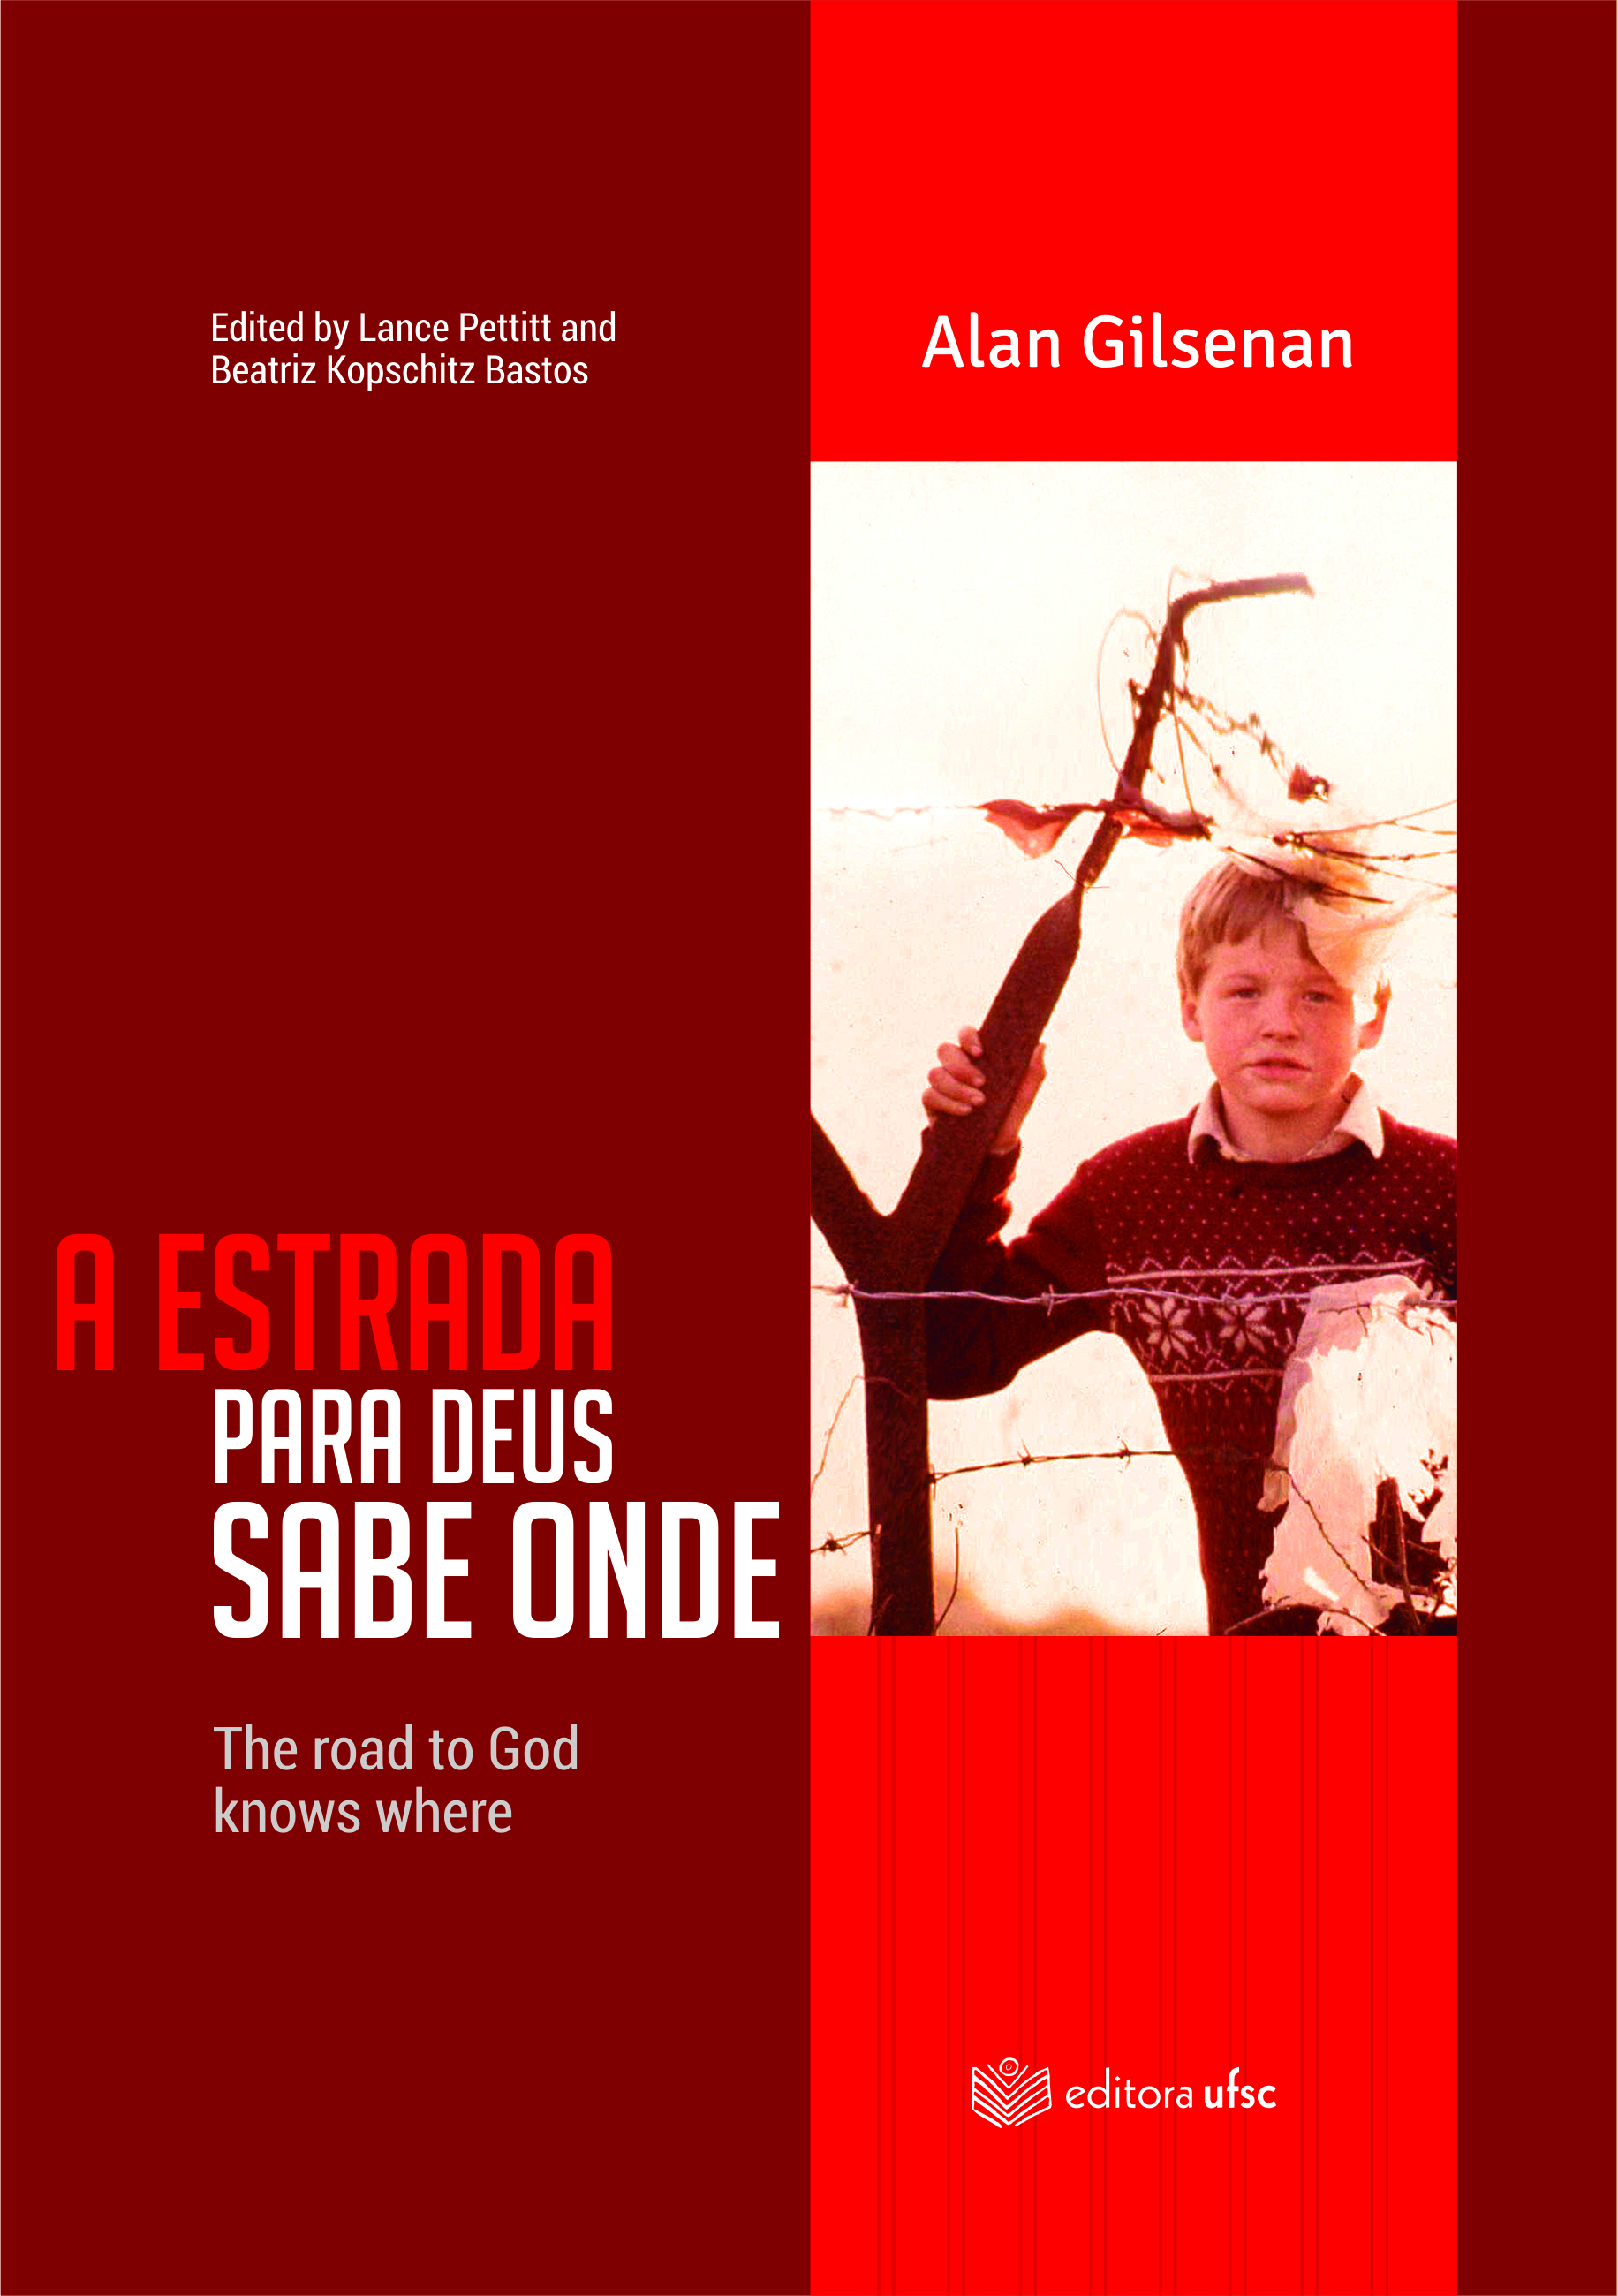 New book for 2016 - published in English and Portuguese.